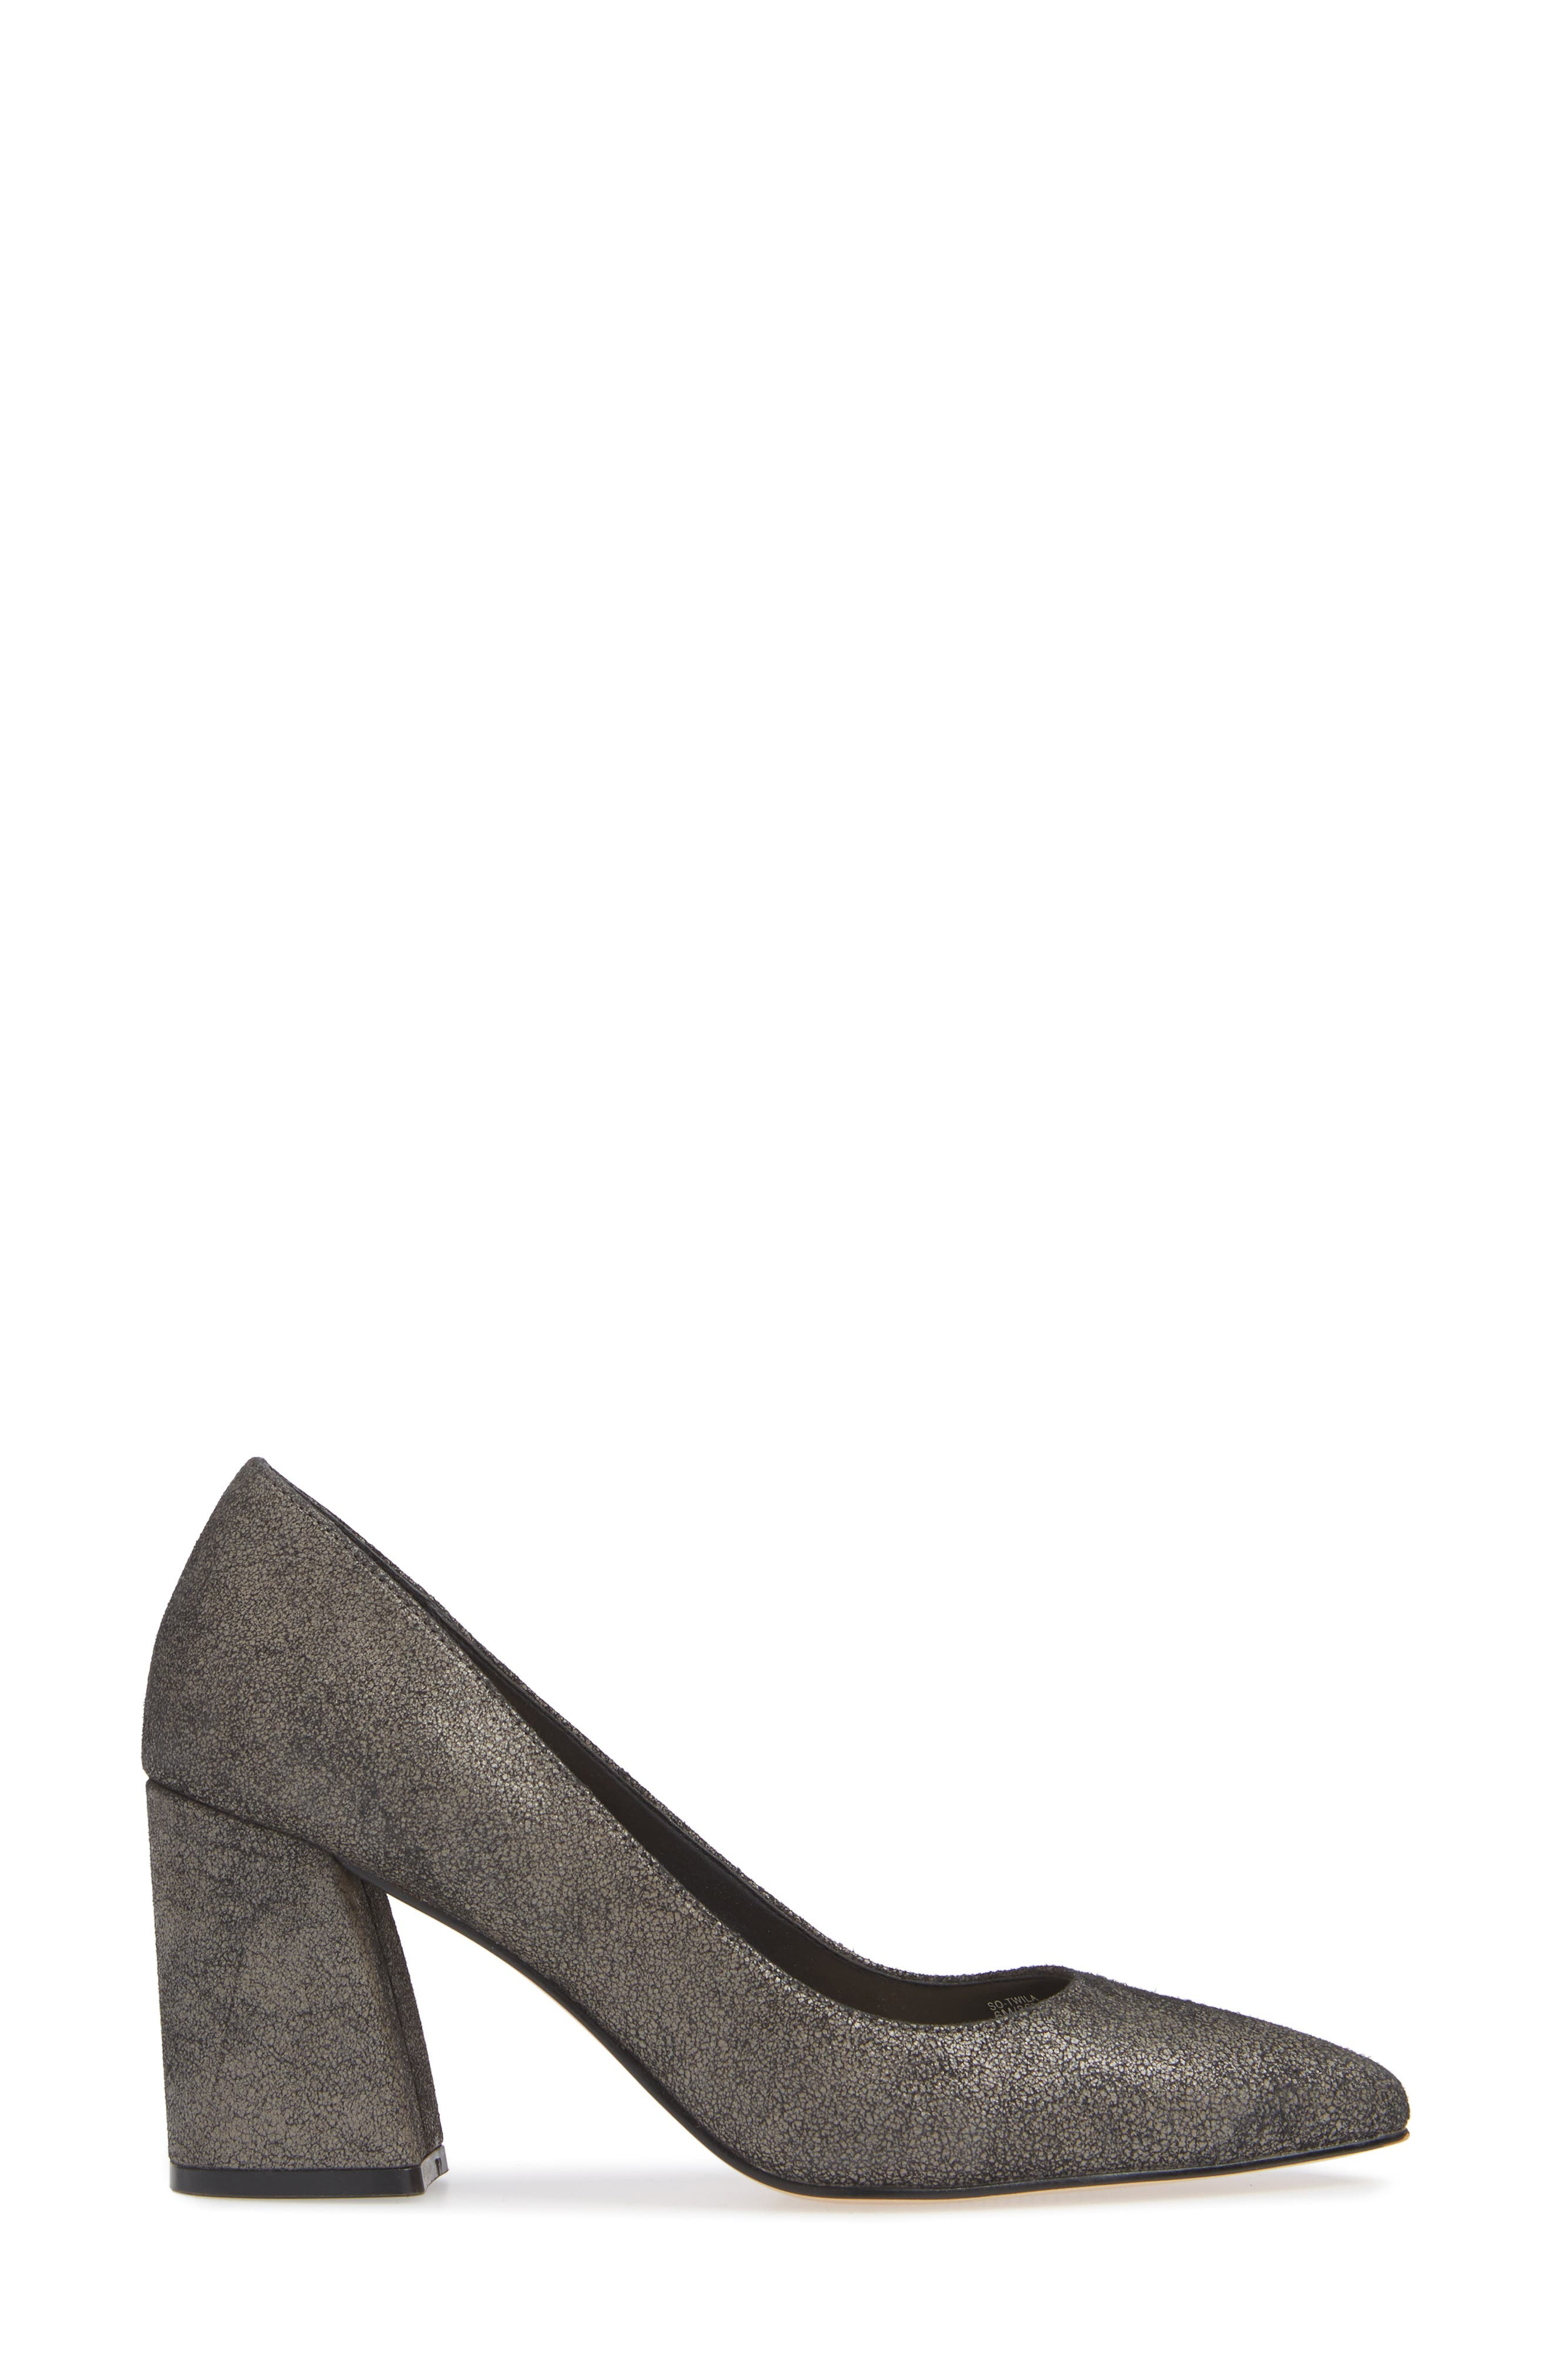 SOLE SOCIETY,                             Twila Pump,                             Alternate thumbnail 3, color,                             DARK CEMENT LEATHER